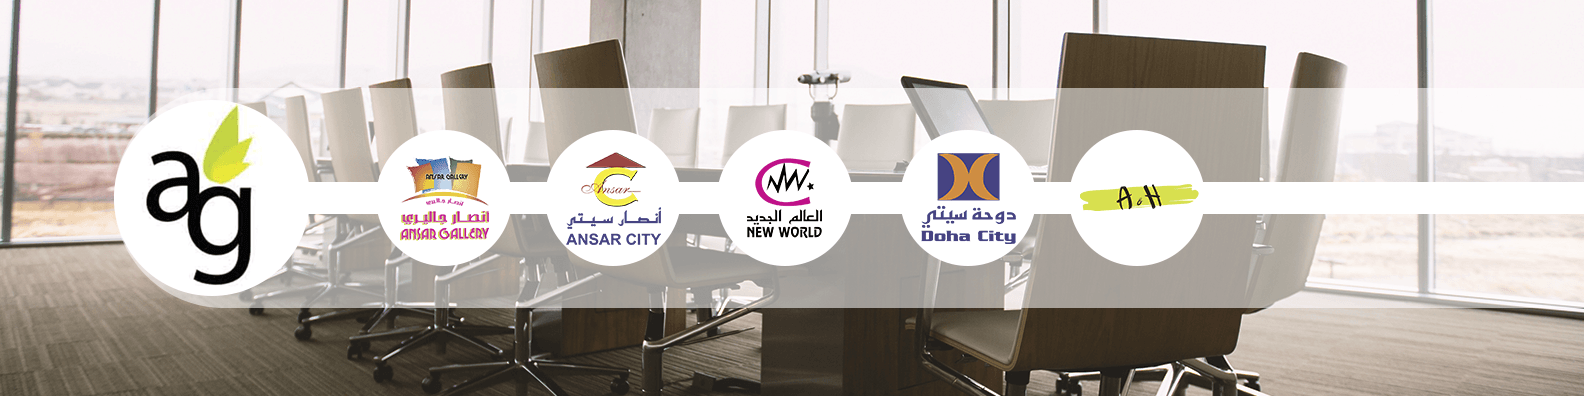 Ansar Group of companies and it's sub brands (Ansar Gallery - Ansar City - New World - Doha City - A&H)